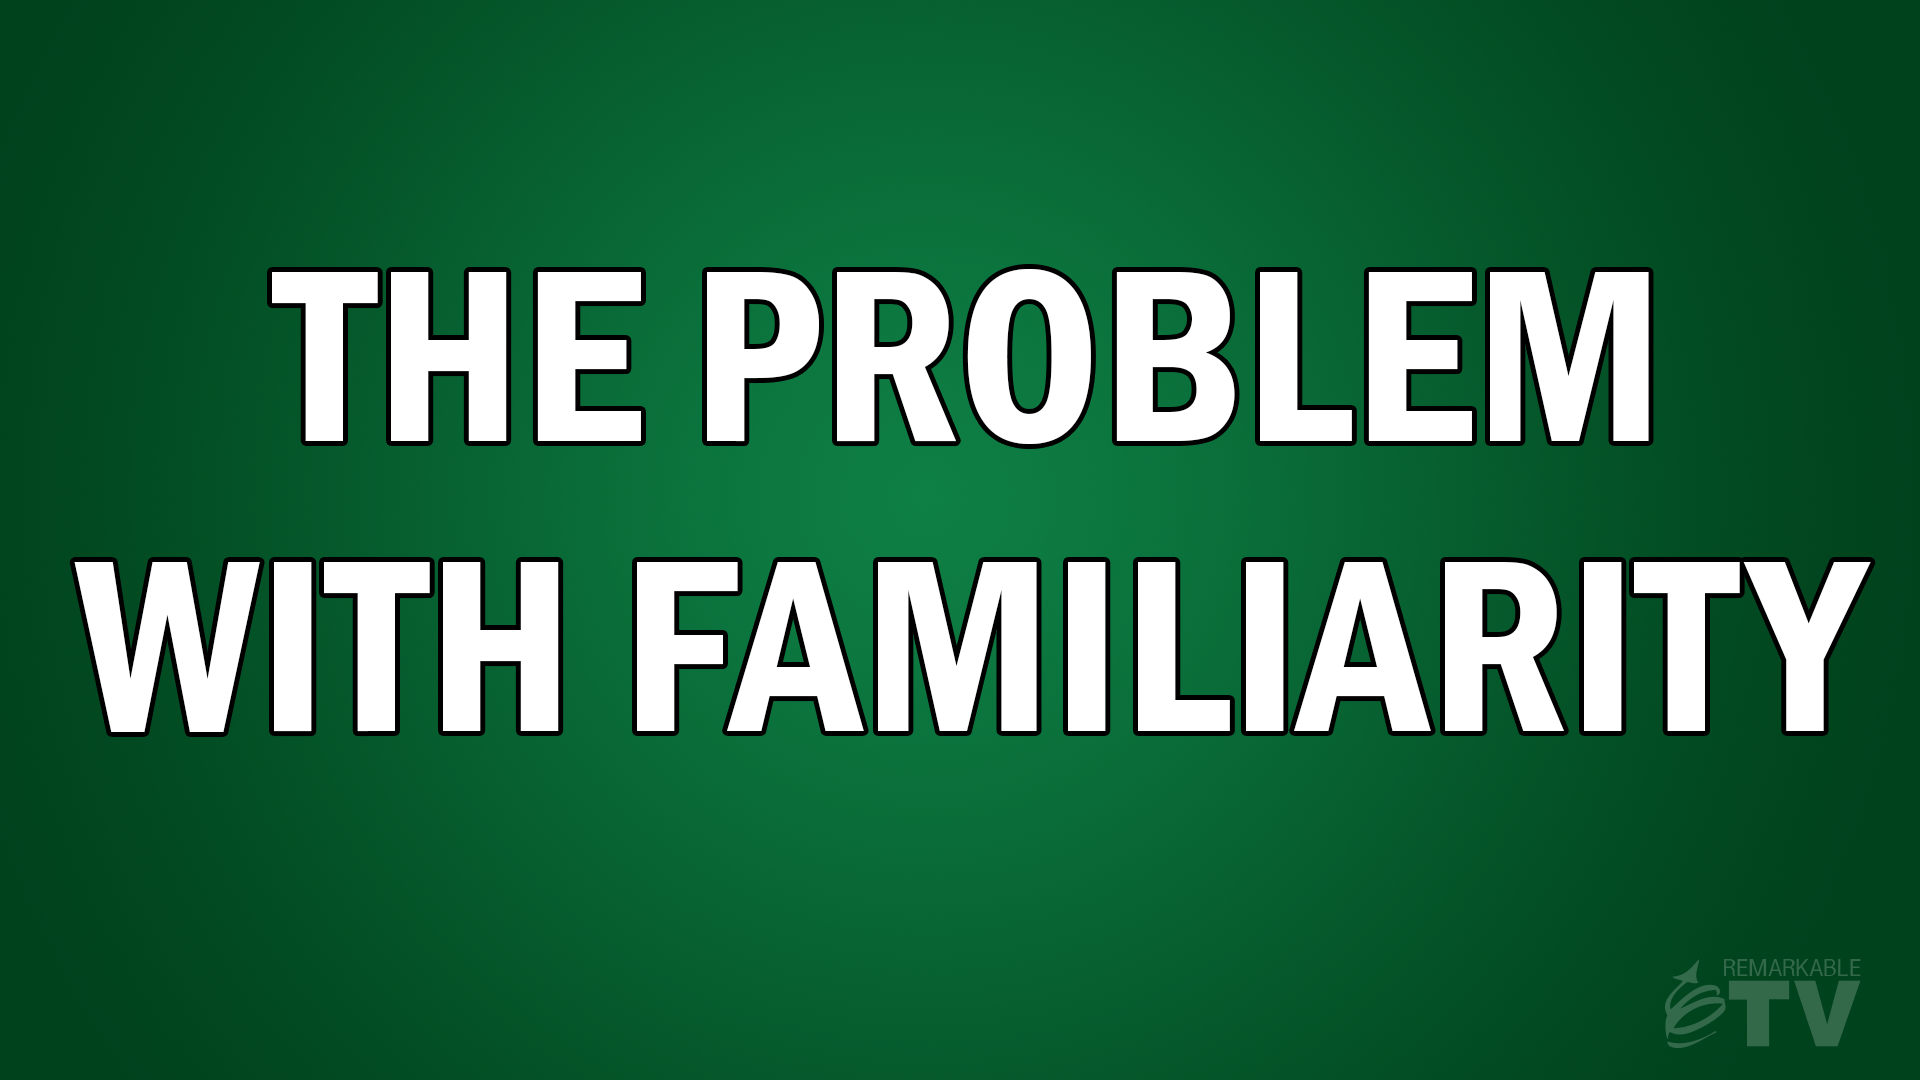 The Problem with Familiarity on Remarkable TV with Kevin Eikenberry